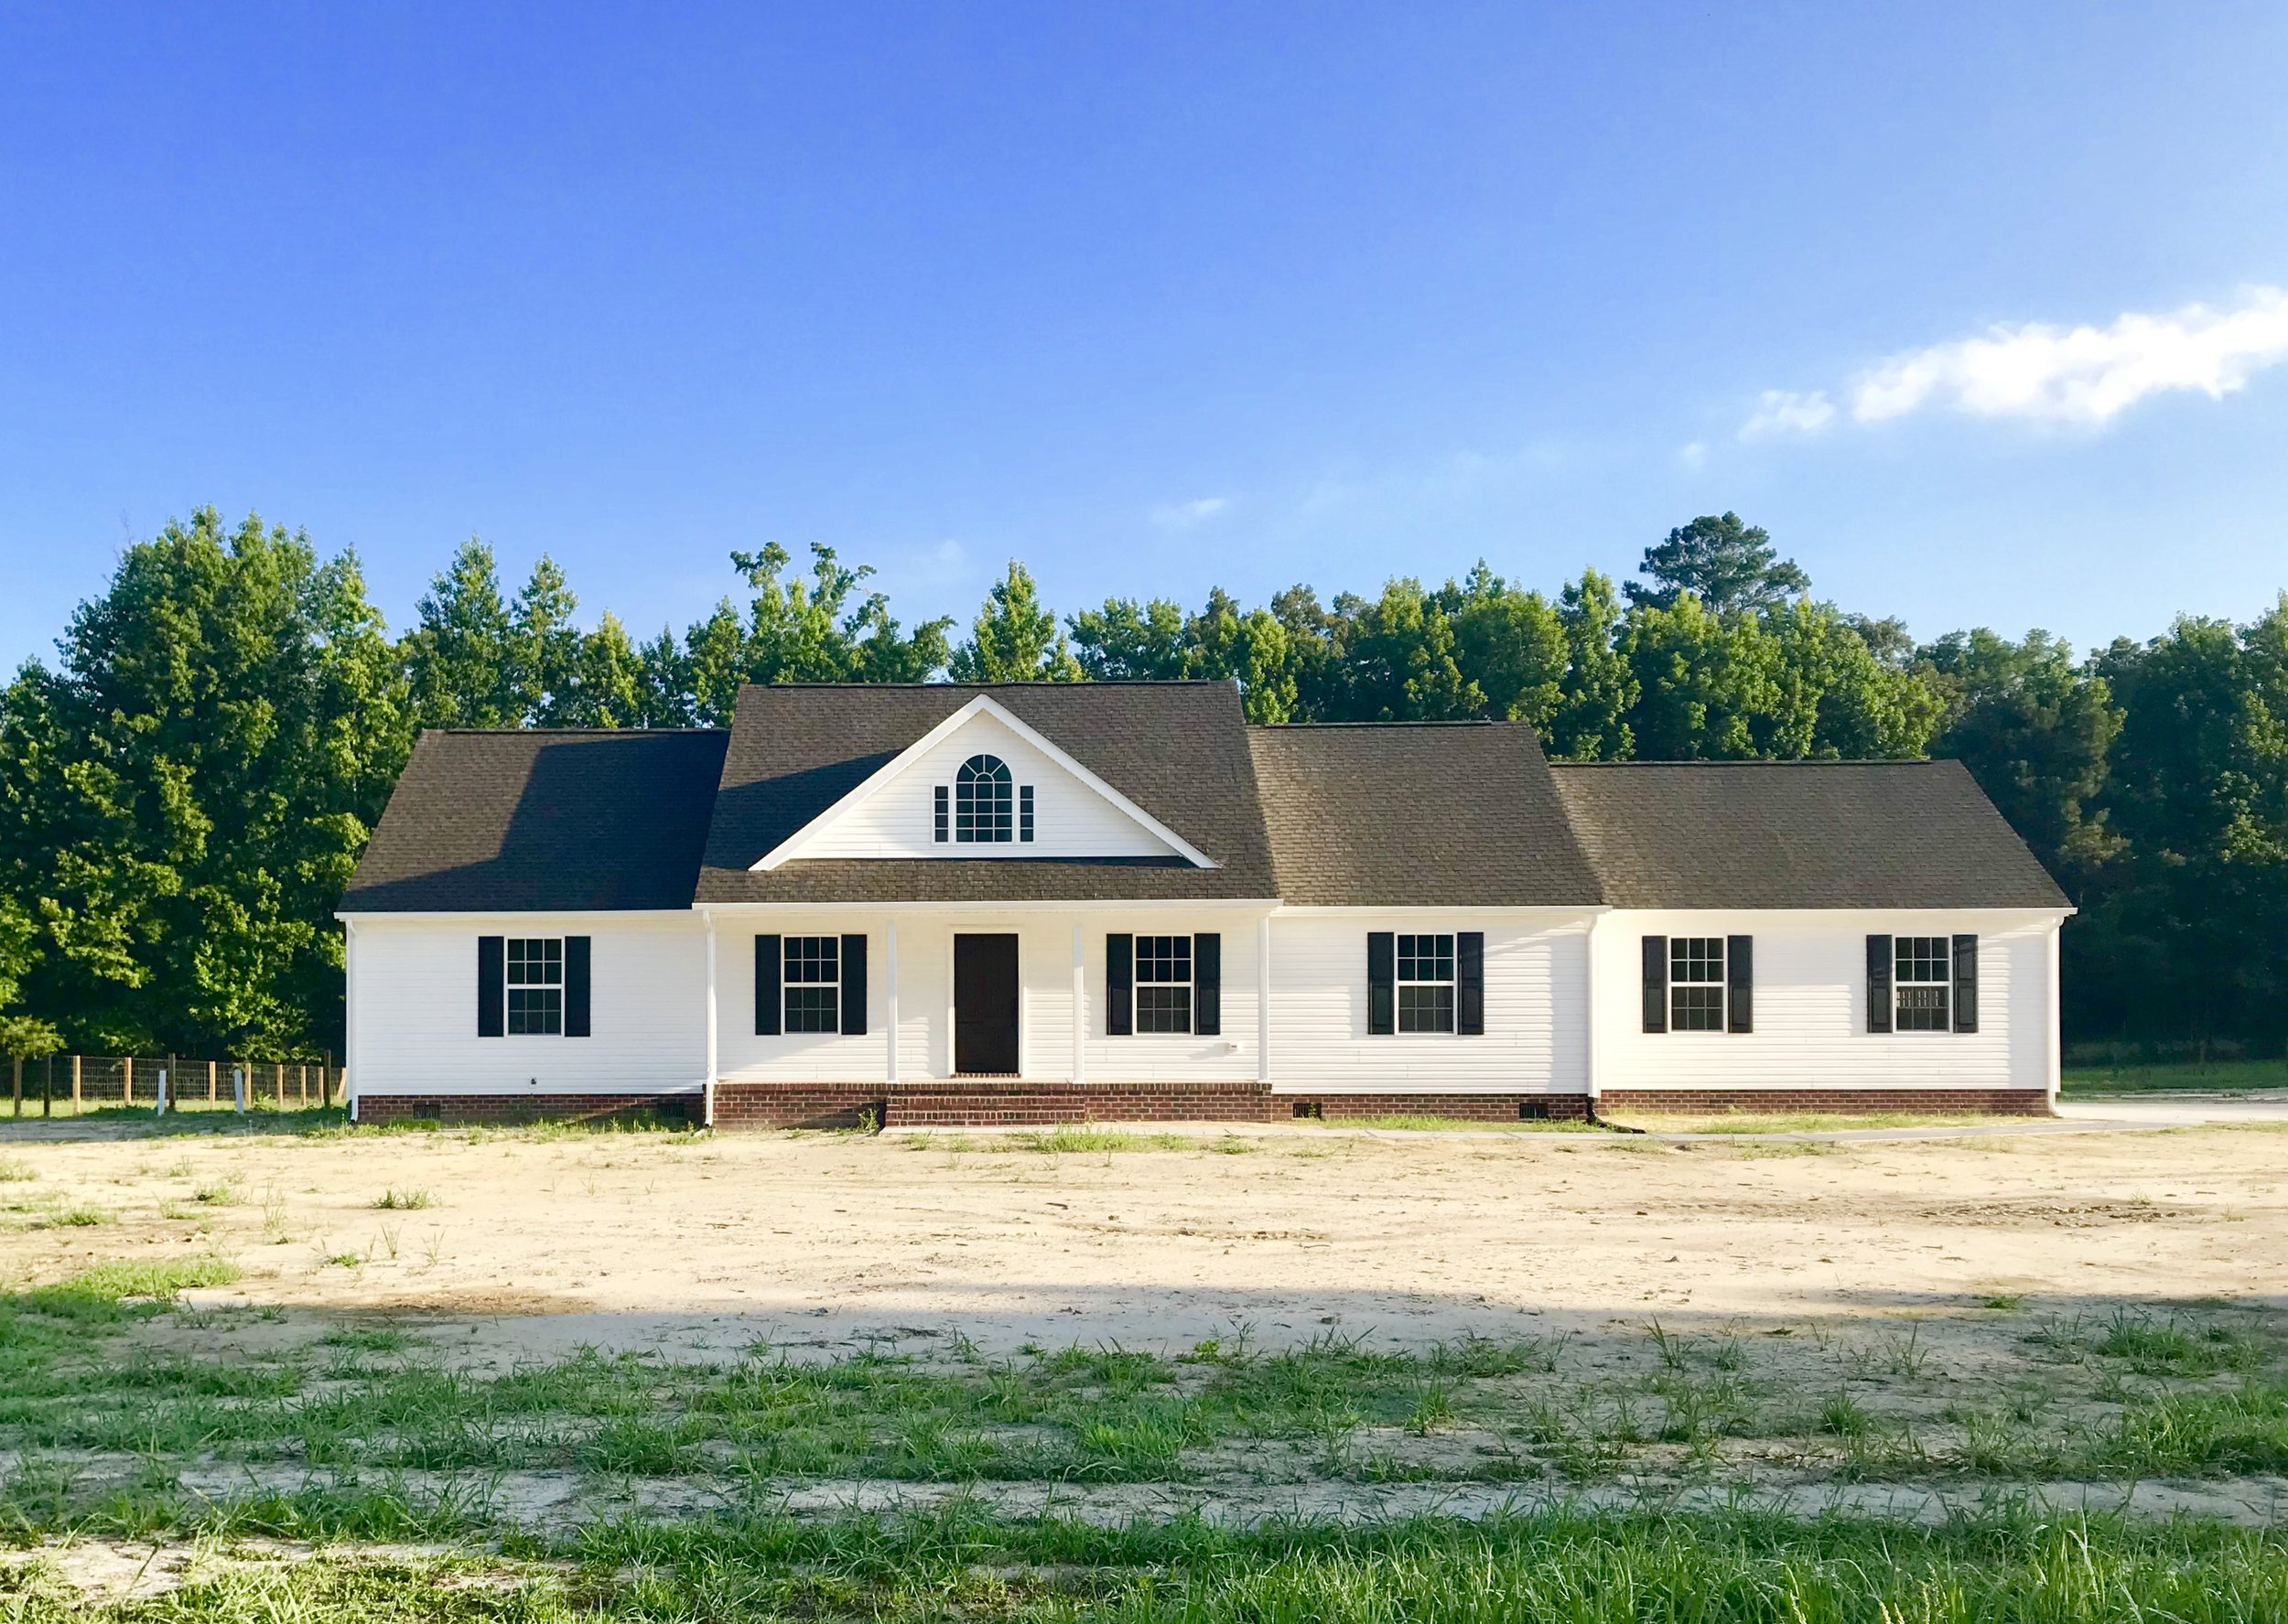 5395 OLD MYRLTE ROAD - NEW CONSTRUCTION ON 2.66 ACRES